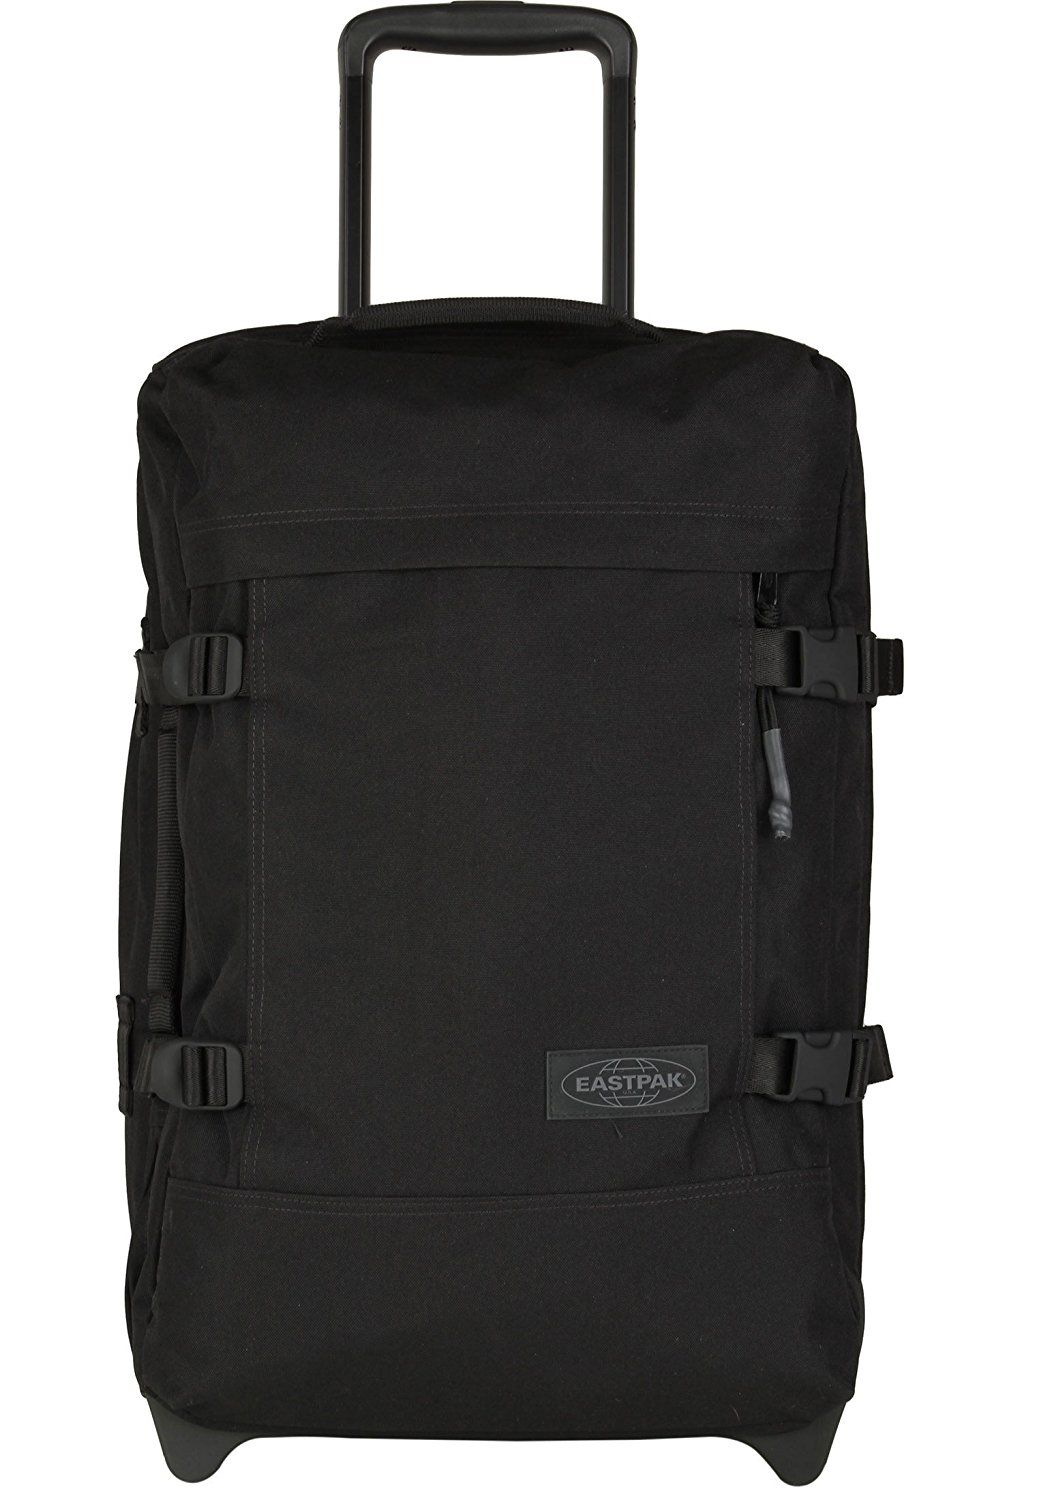 Eastpak Carry-on Trolley Tranverz S 51cm Authentic 42.0 I ajouZBX